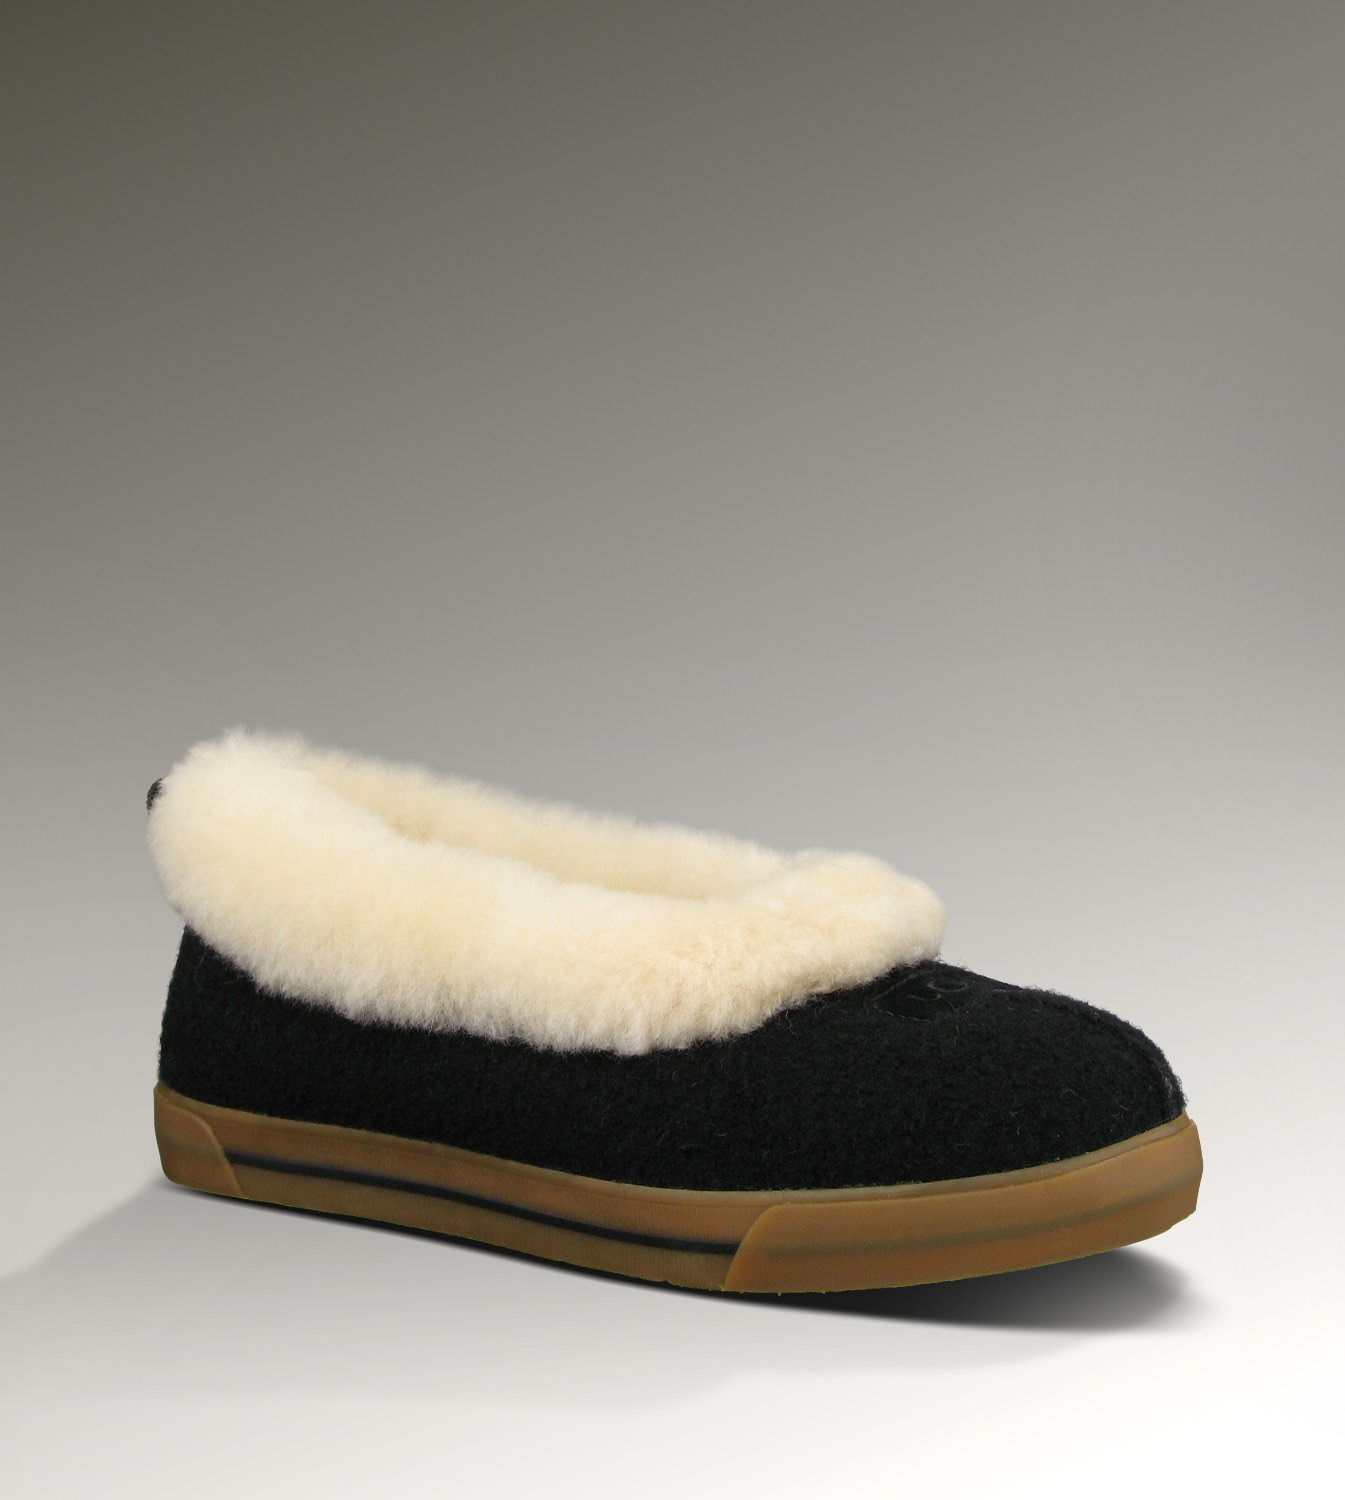 UGG Rylan Wool 1001633 Black Slippers